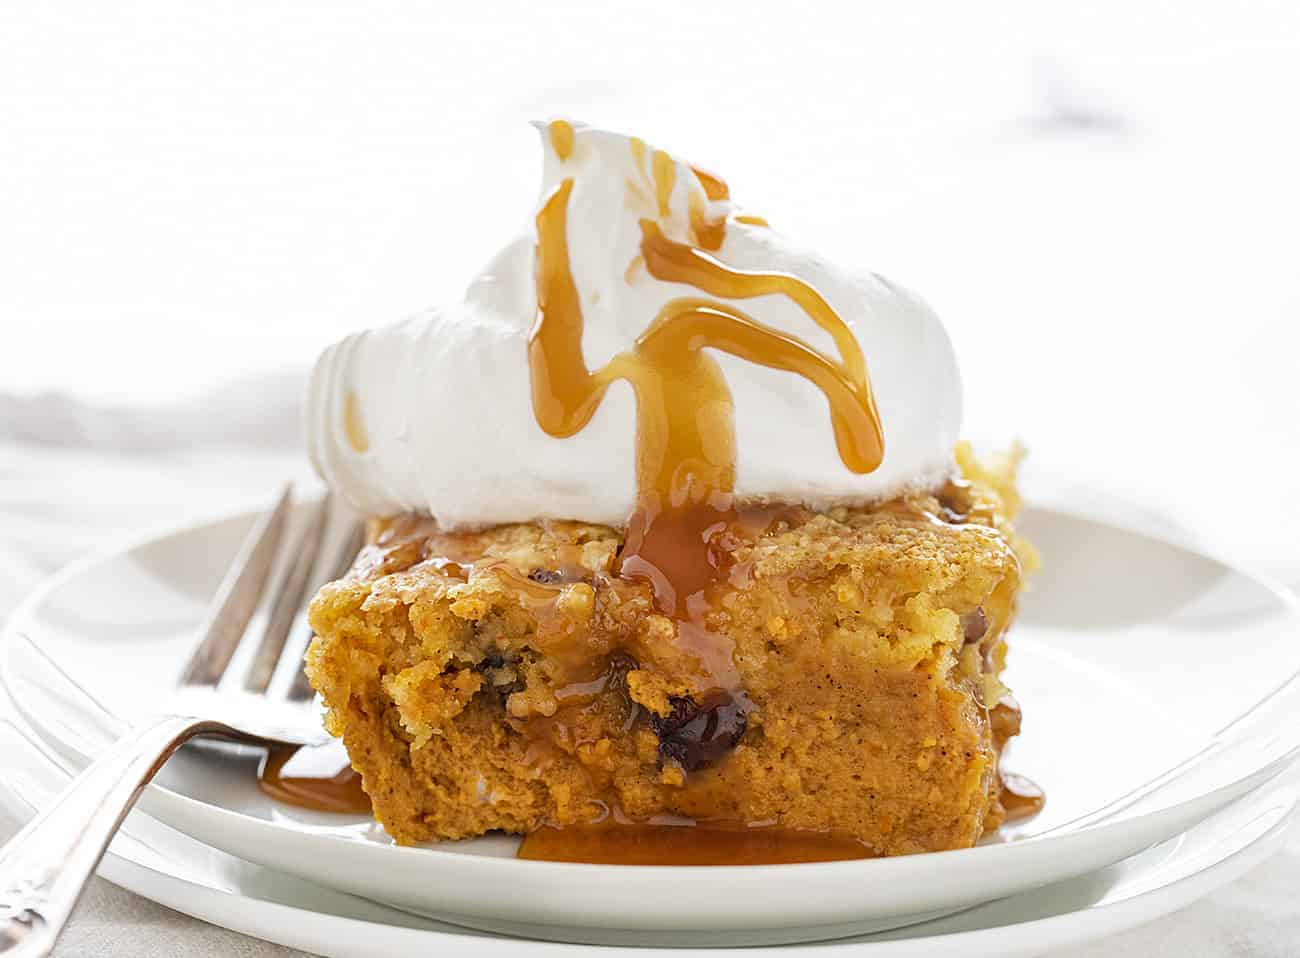 One piece of Pumpkin Pecan Dump Cake